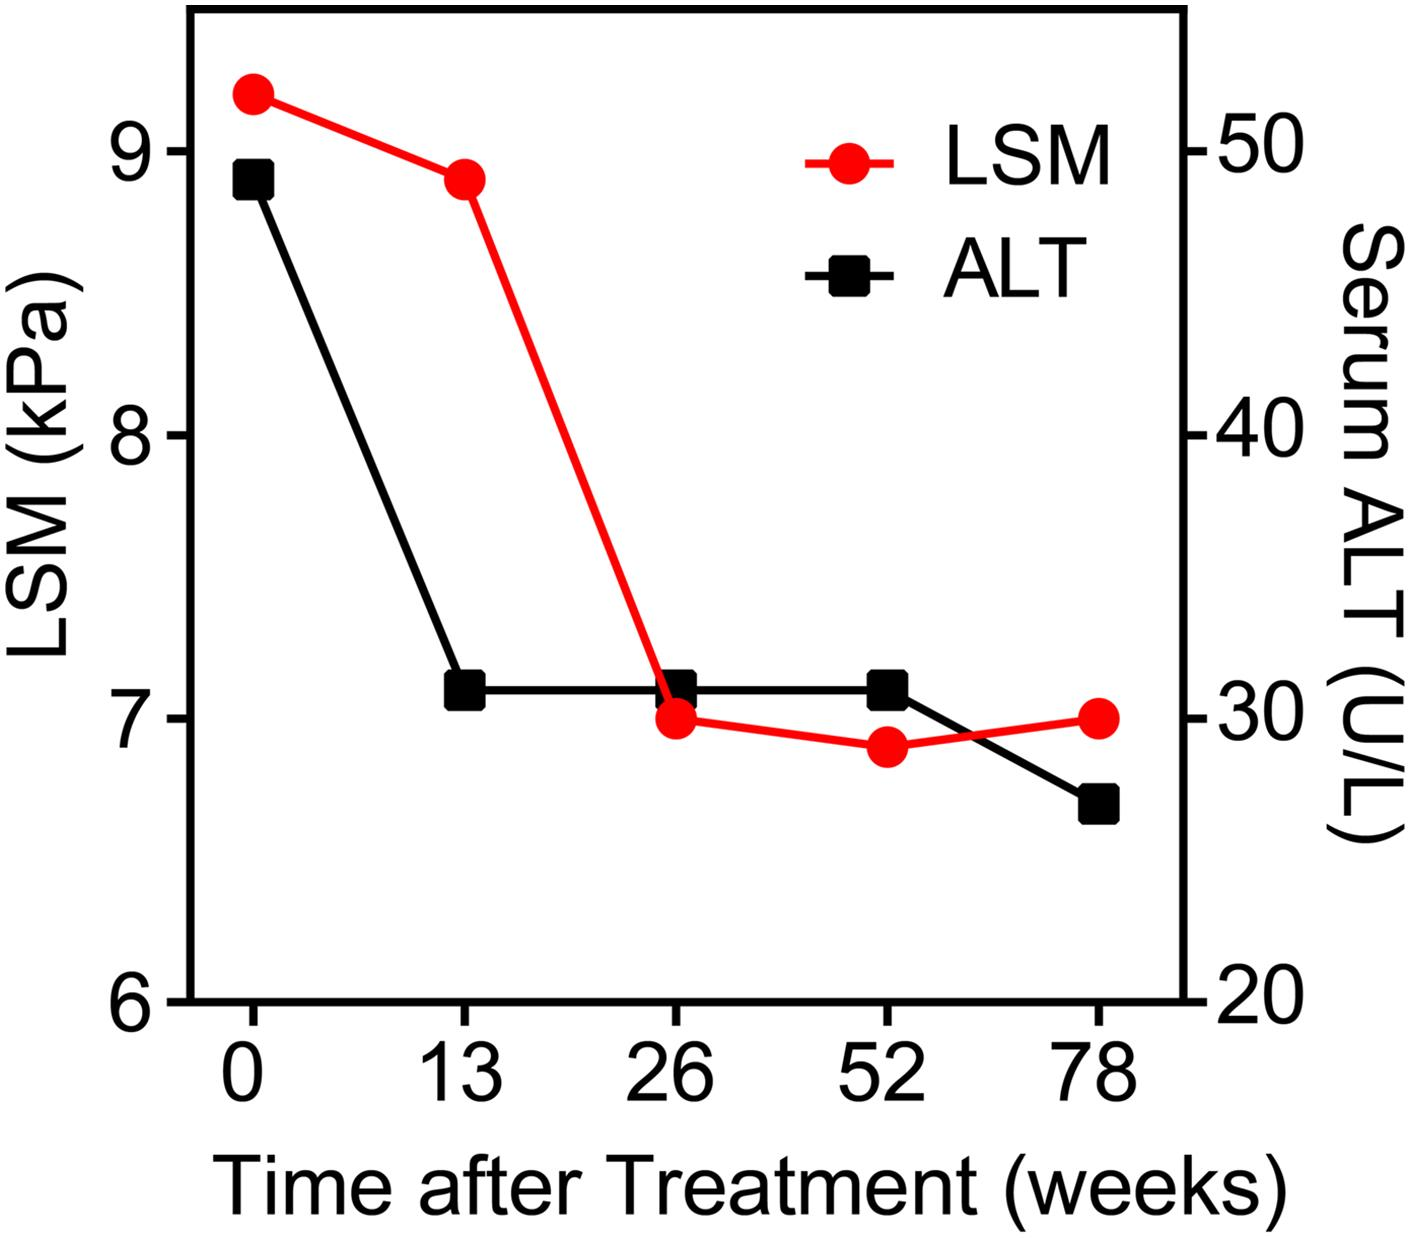 In longitudinal cohort LSM and alanine aminotransferase (median±interquartile range) level change during treatment with entecavir.